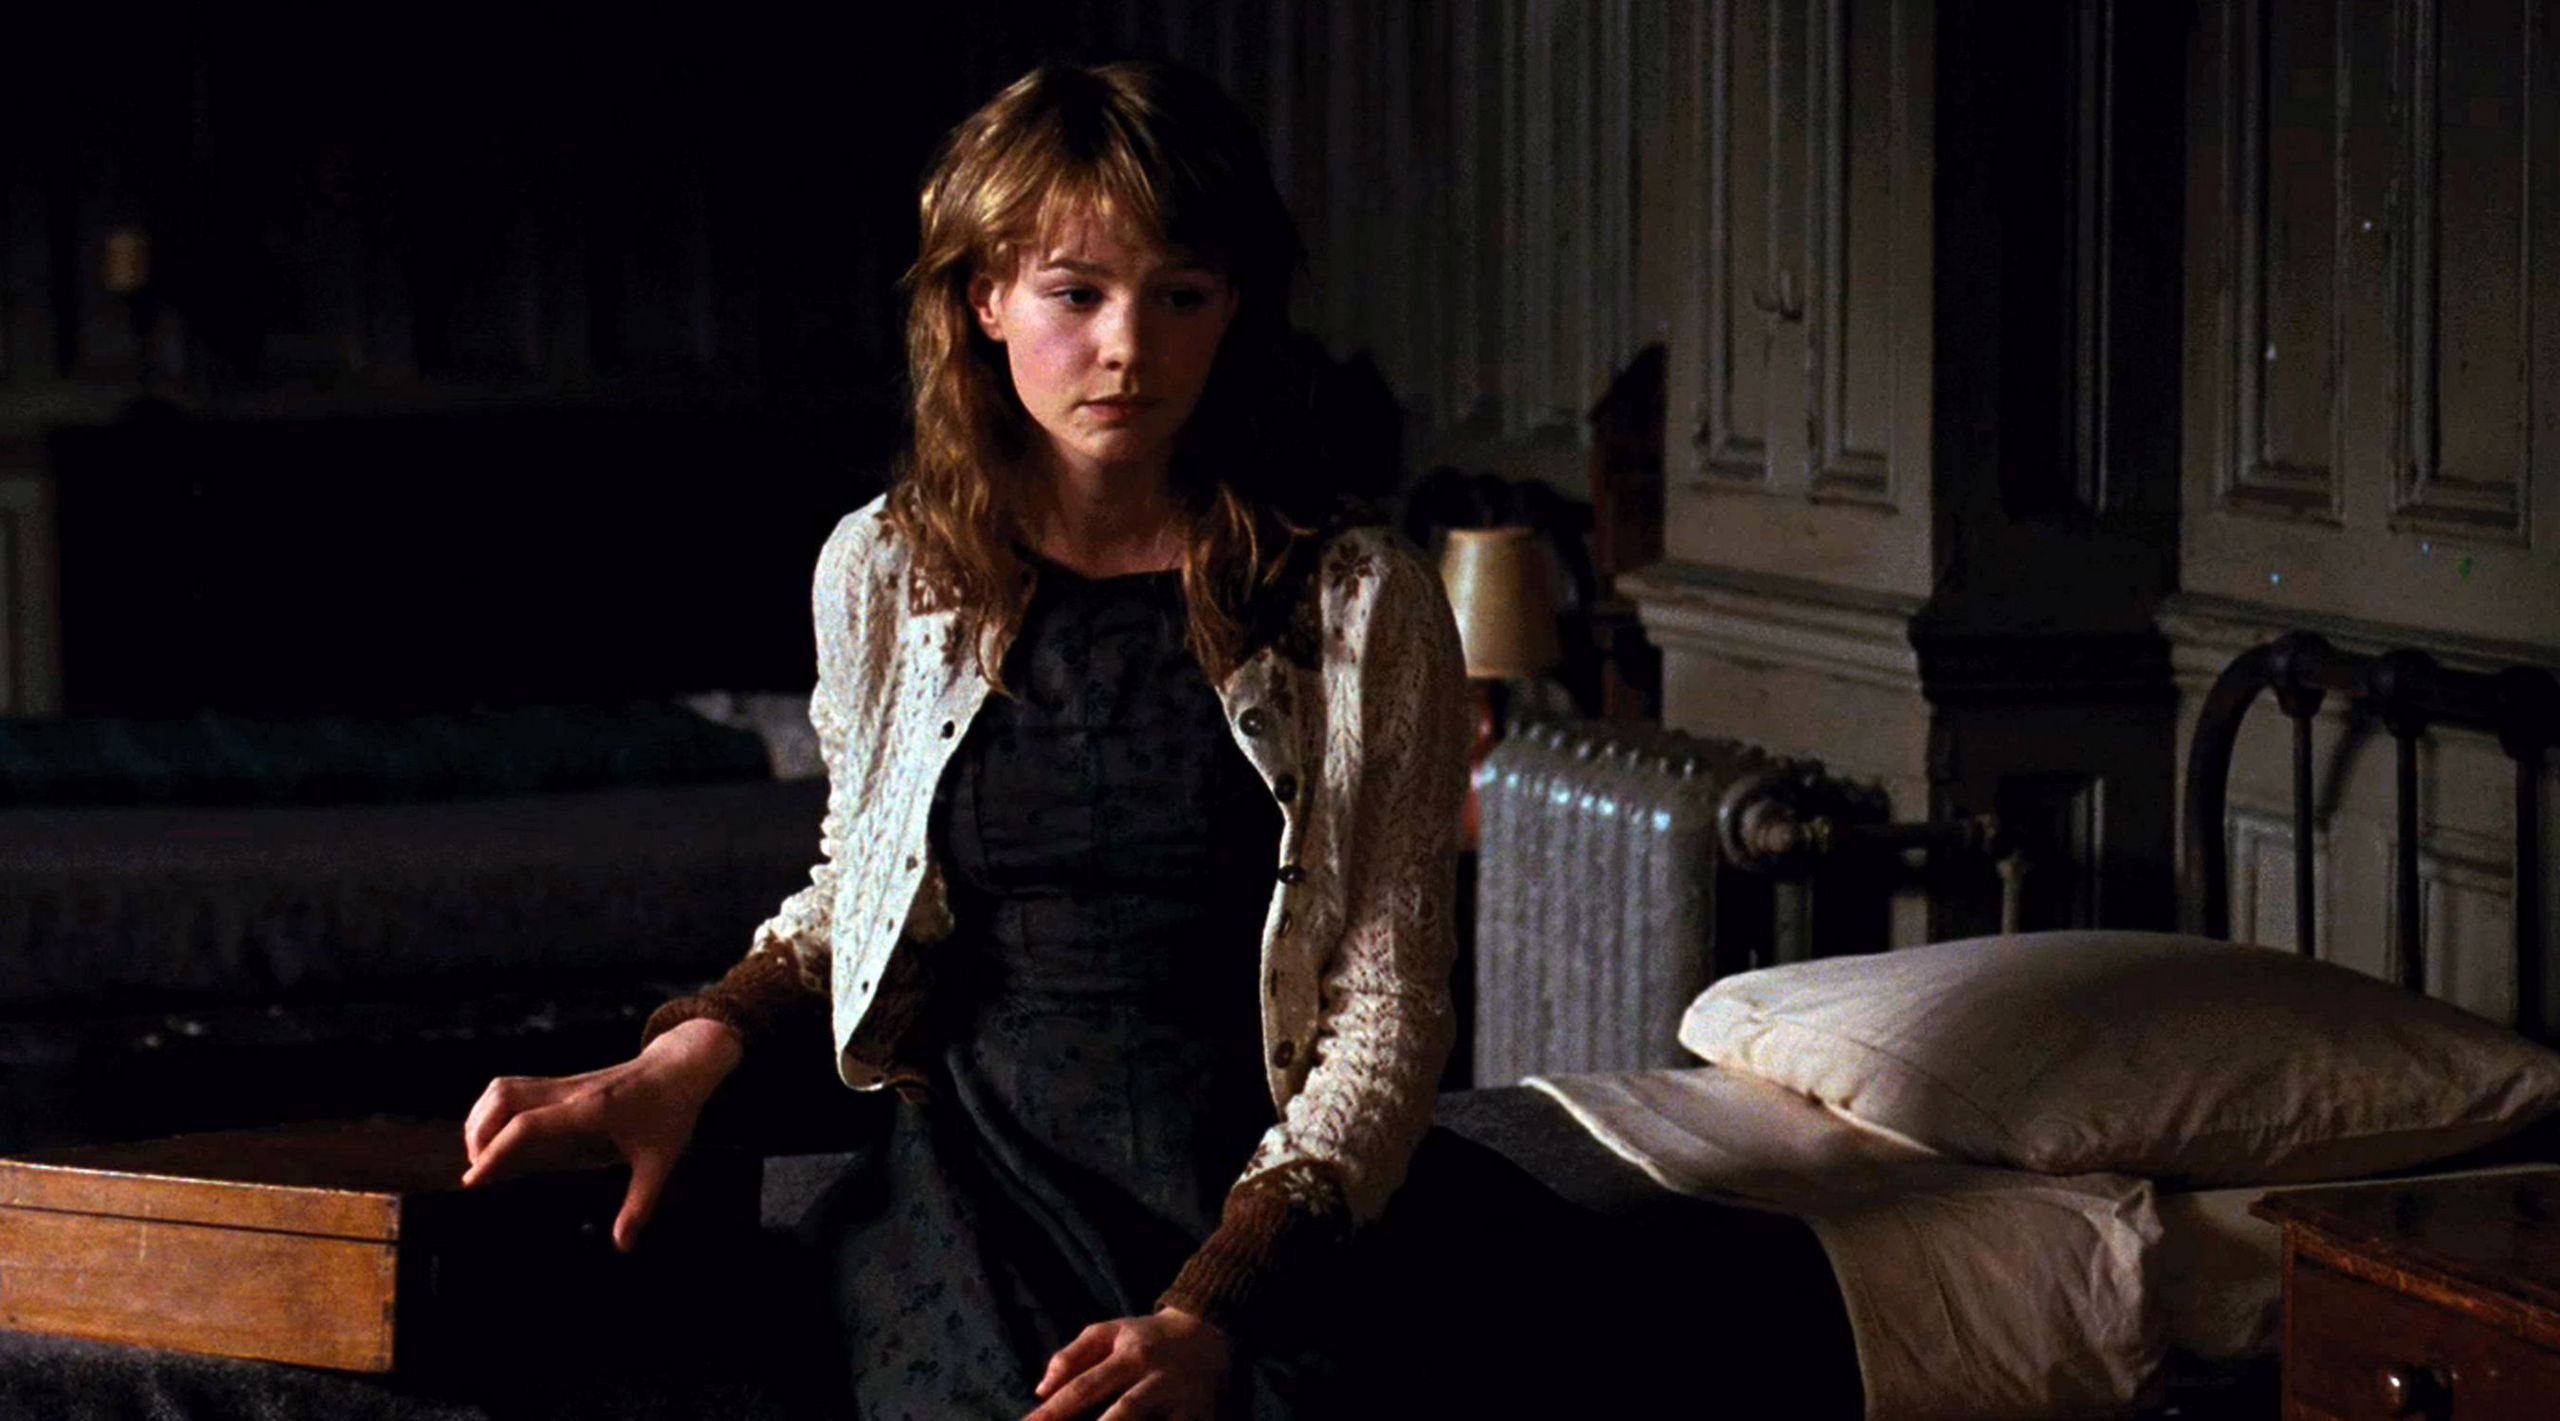 Never let me go - Carey Mulligan Photo (17749459) - Fanpop